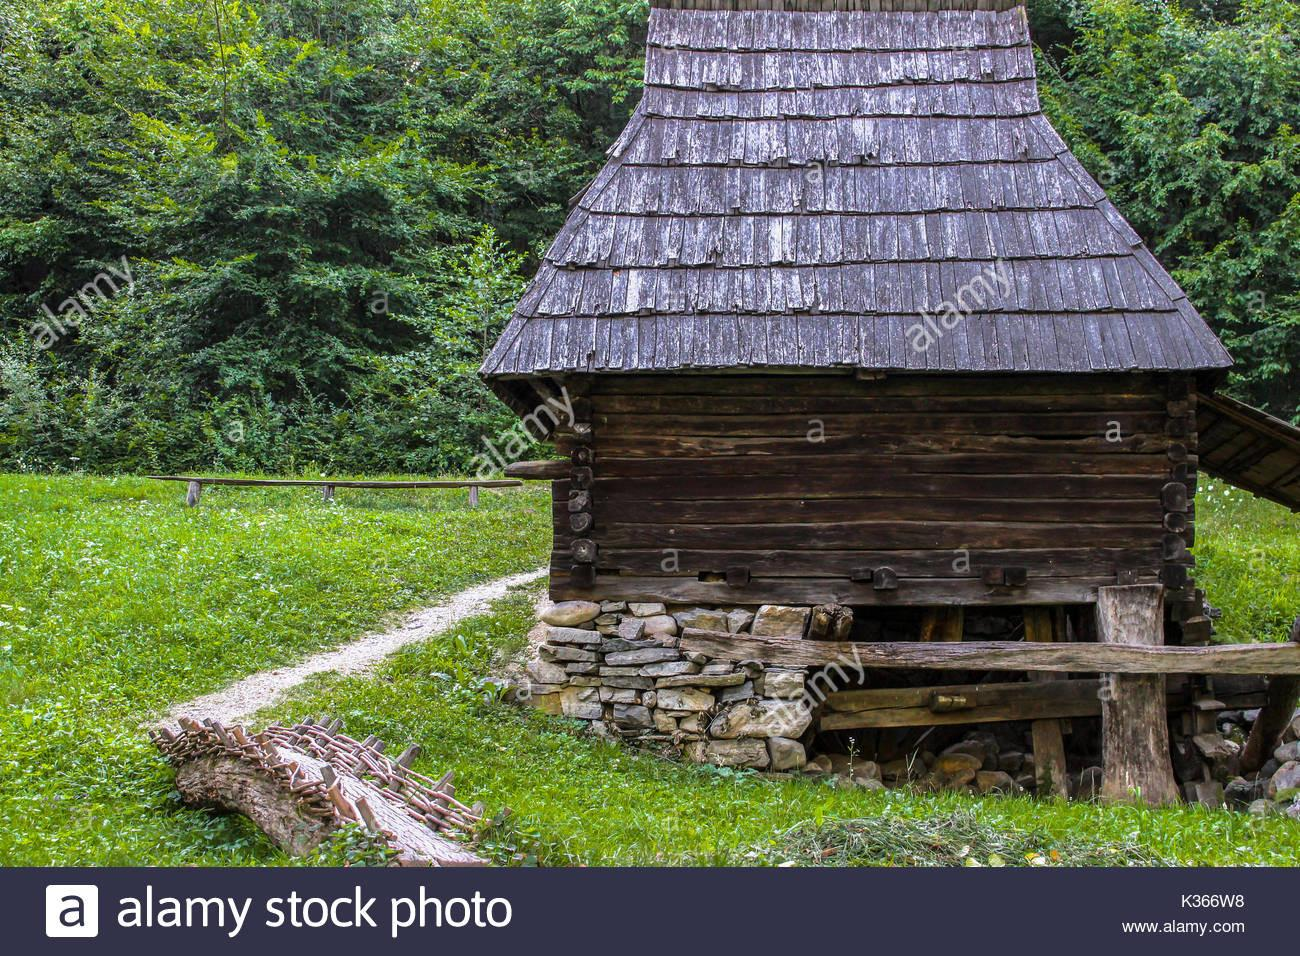 Old Wooden Rustic House Romania Stock Photos